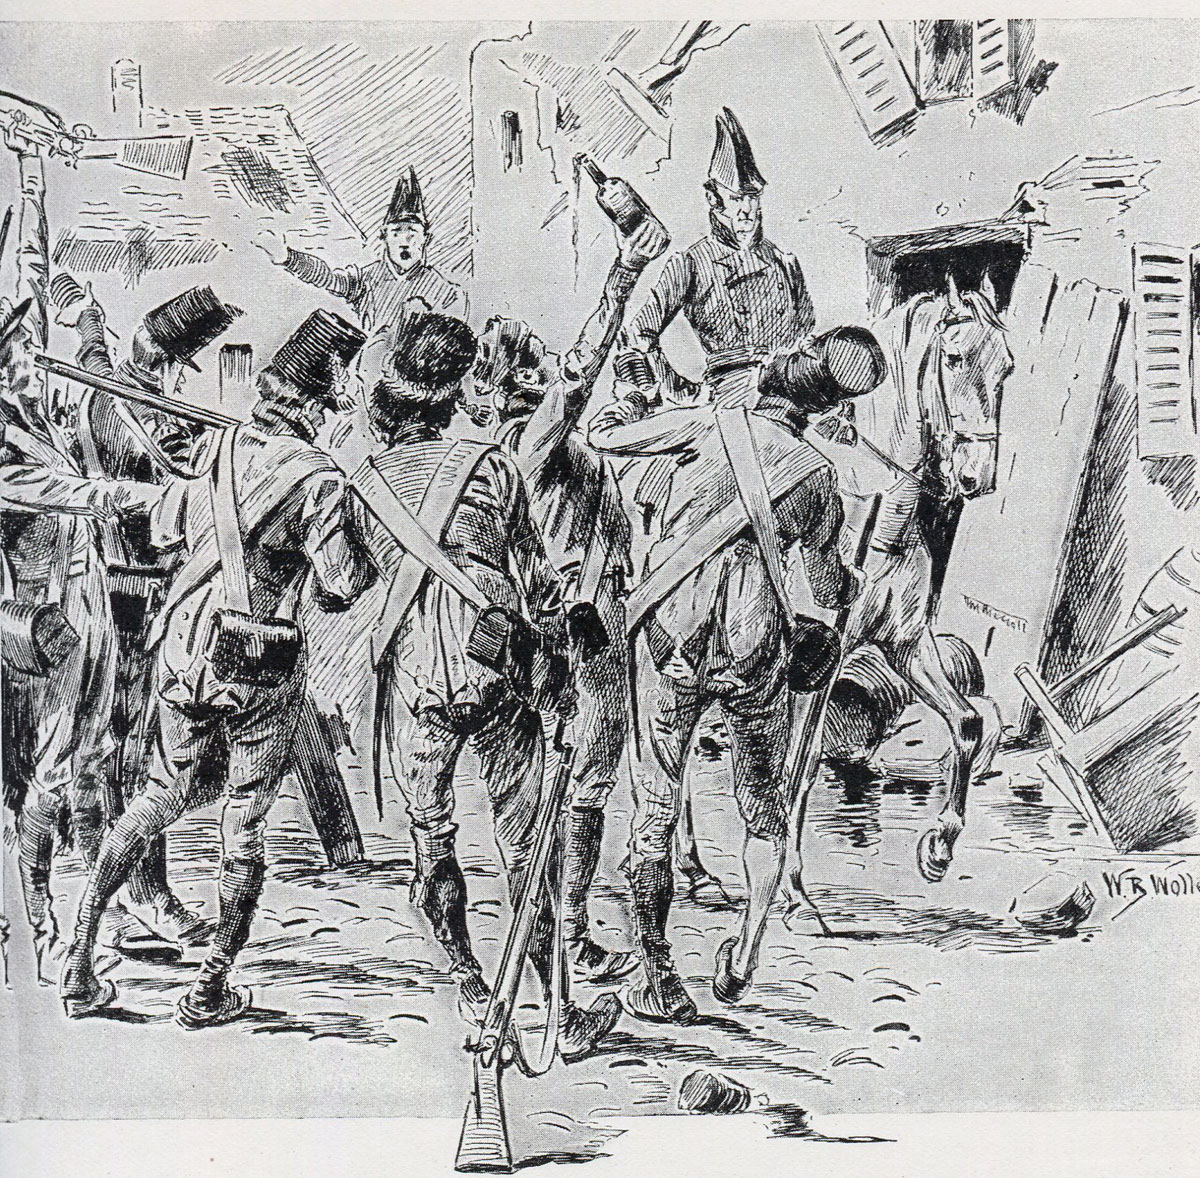 British troops looting after the Storming of Badajoz on 6th April 1812 in the Peninsular War: picture by William Barnes Wollen